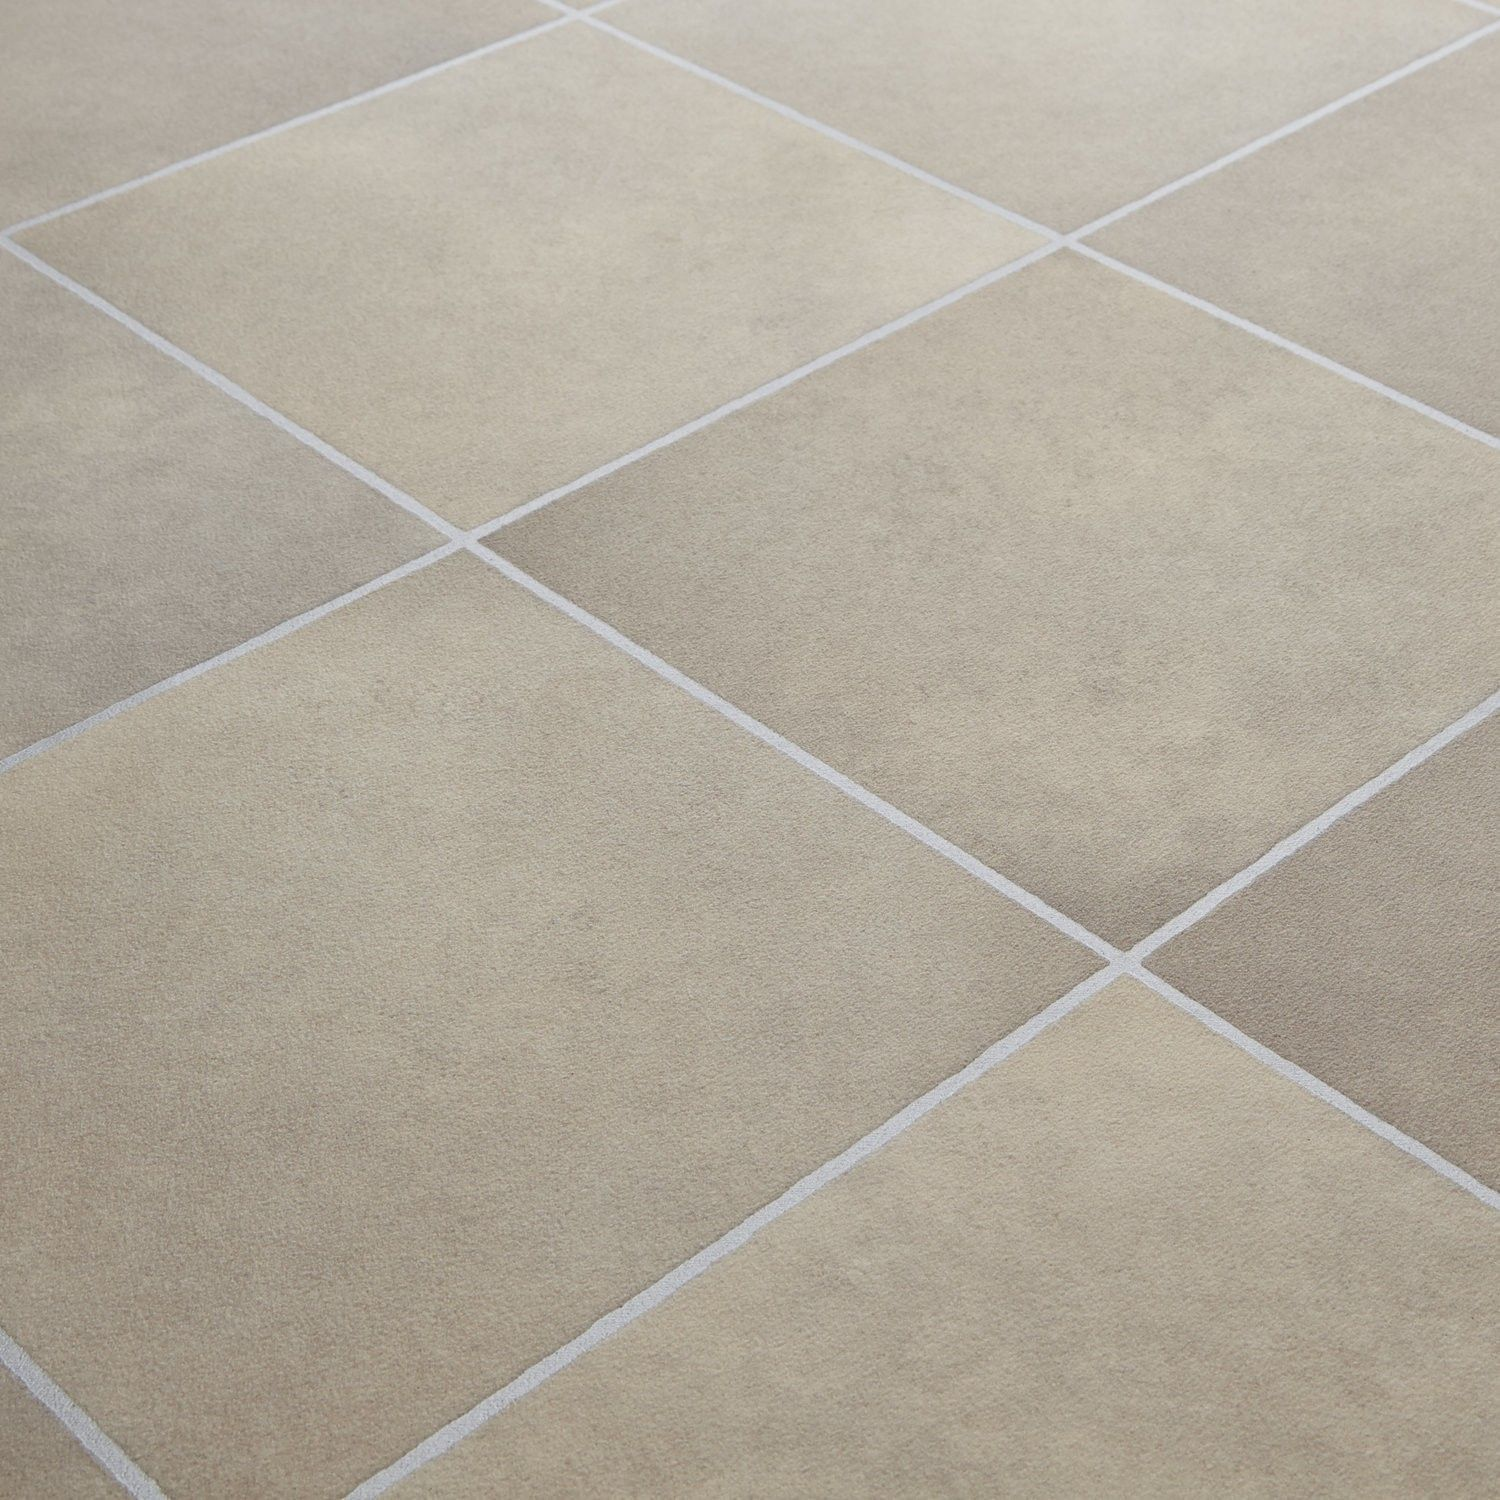 Vinyl Floor Tiles Kitchen 1199 Rhino Classic Cottage Beige Grey Stone Tile Effect Vinyl